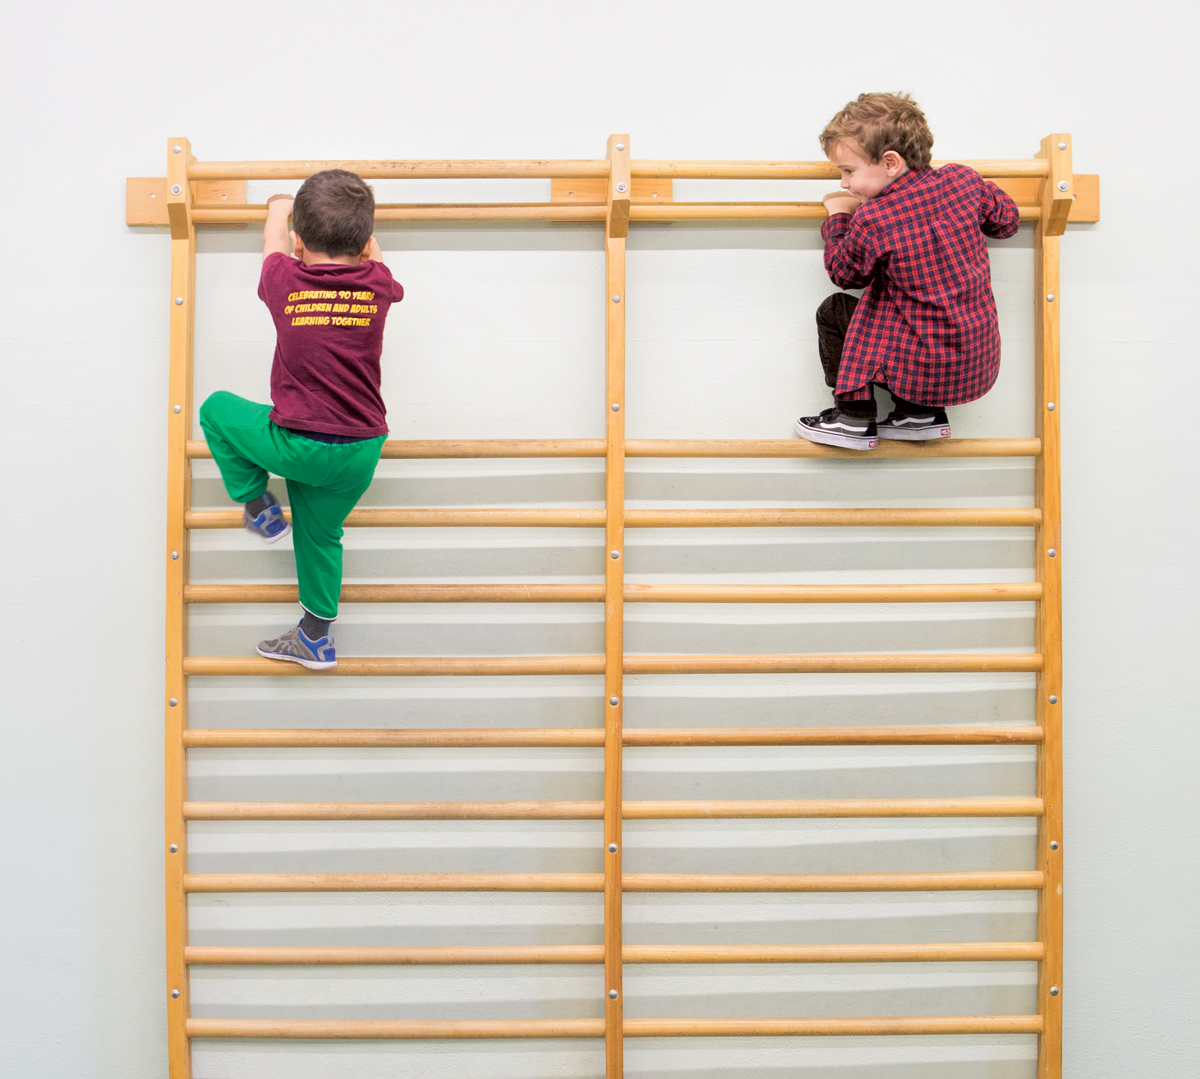 Preschool boys climbing on ladder